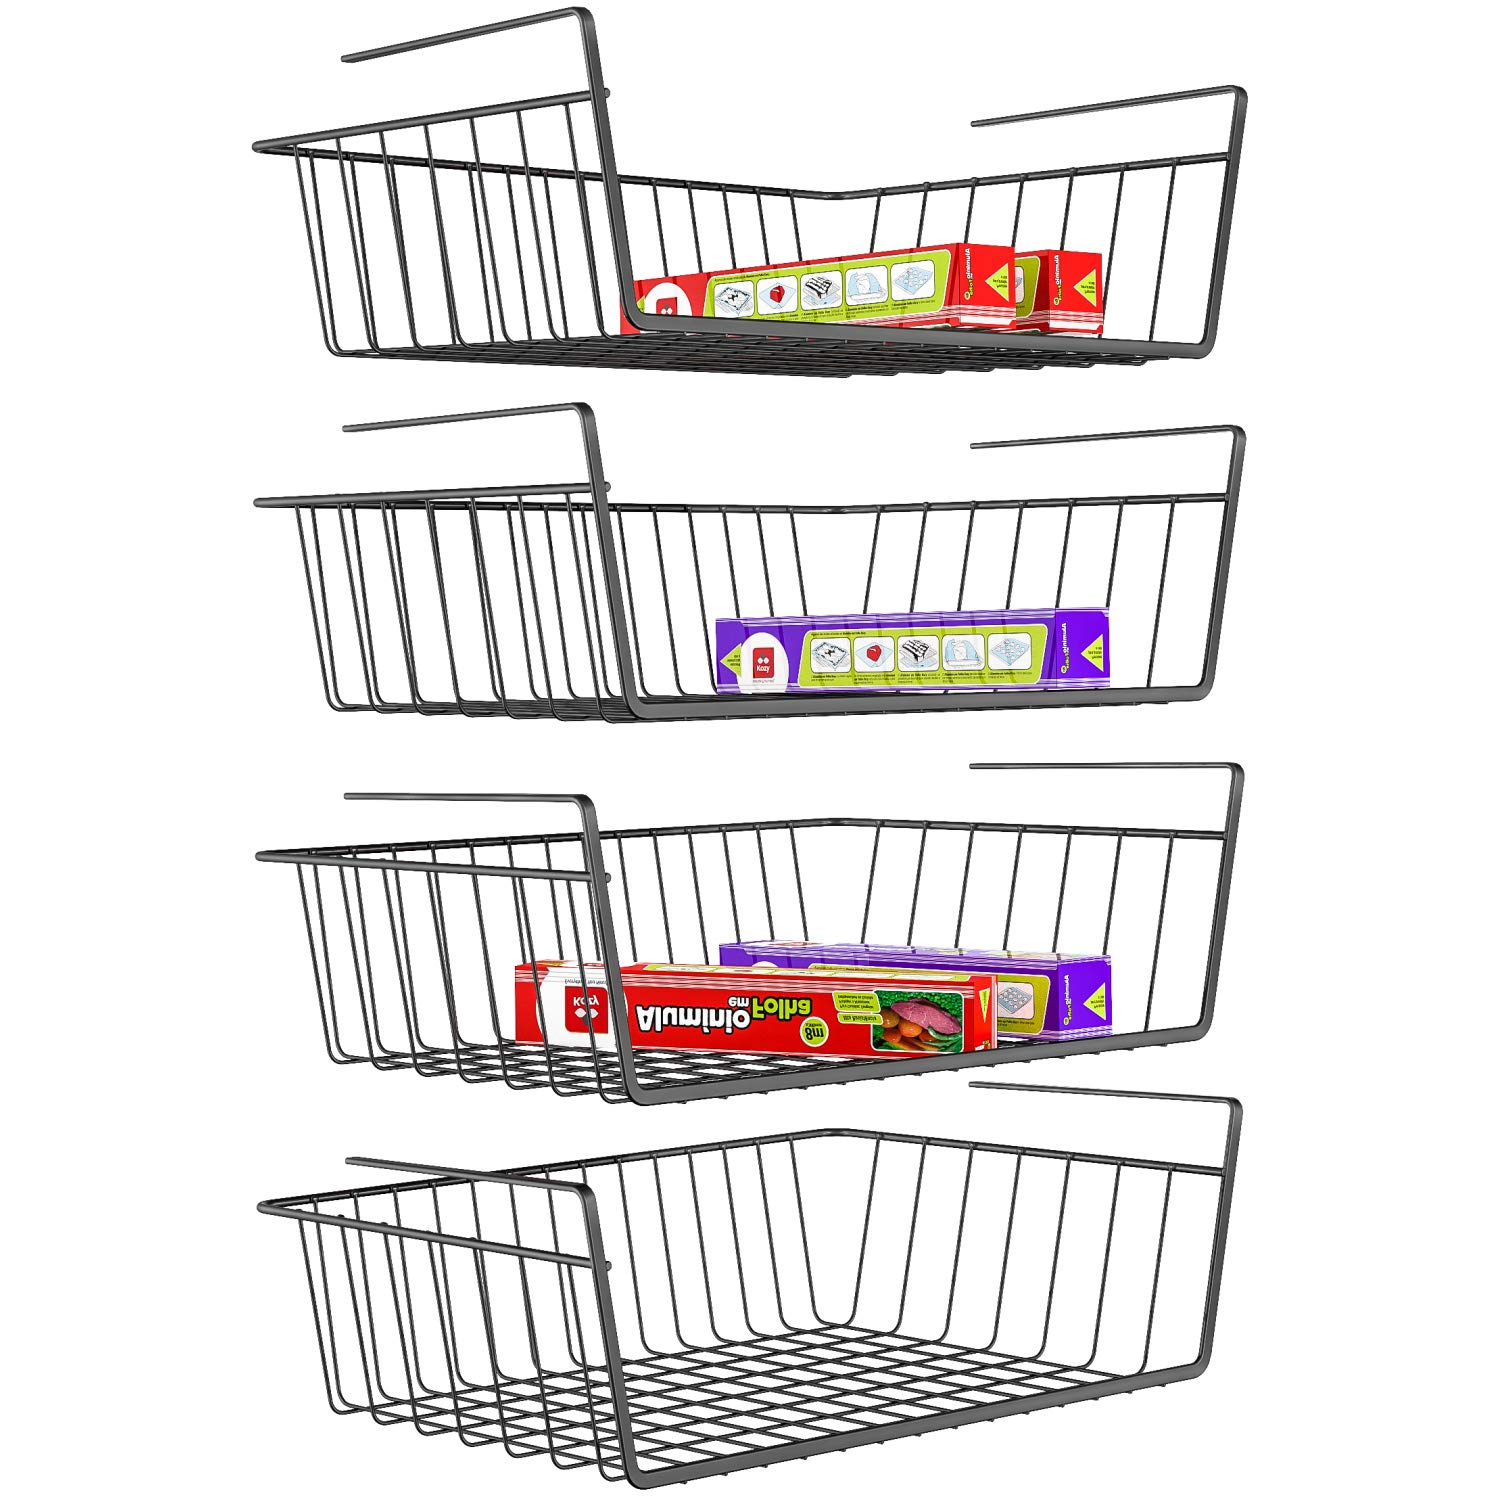 iSPECLE Under Shelf Basket, 4 Pack Wire Rack, Slides Under Shelves for Storage, Easy to Install, Black by iSPECLE